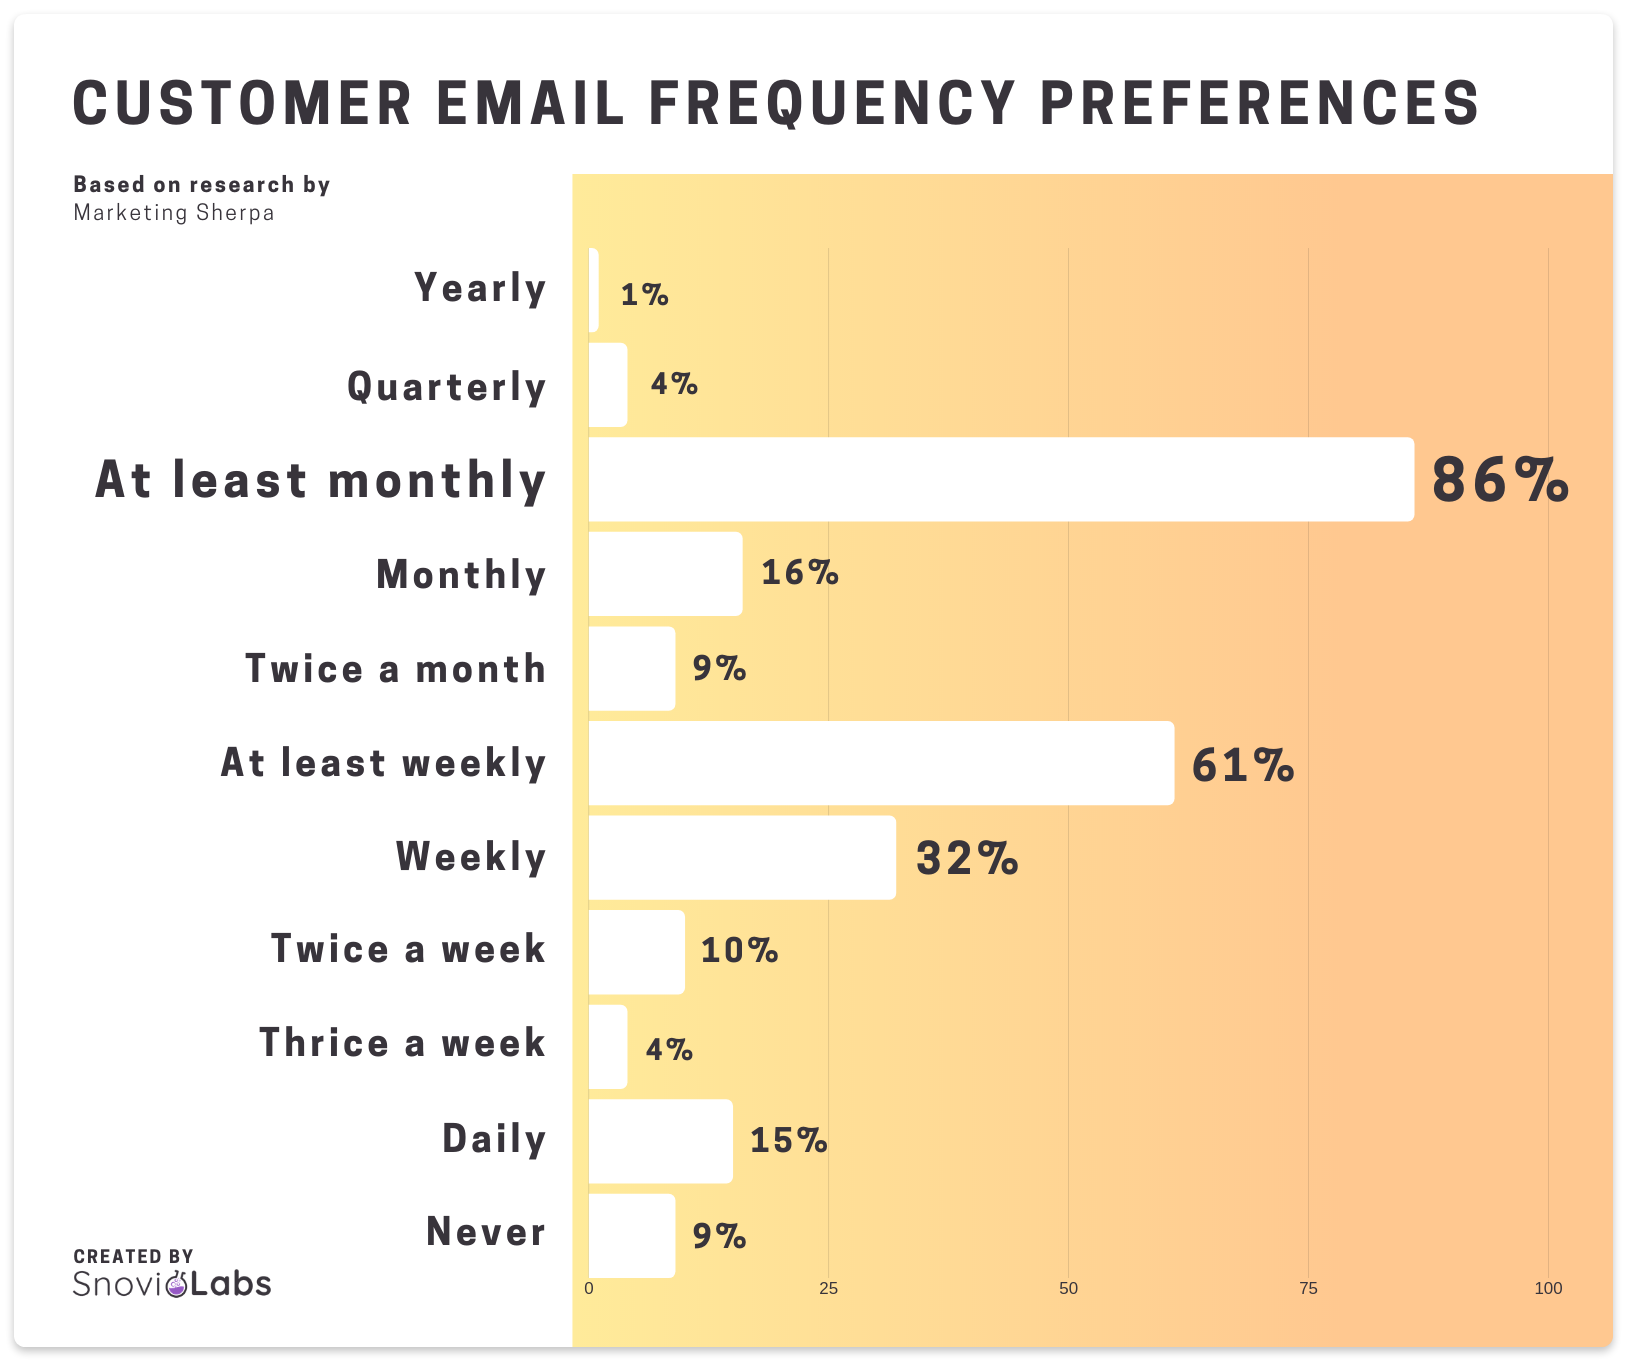 Email frequency preferences